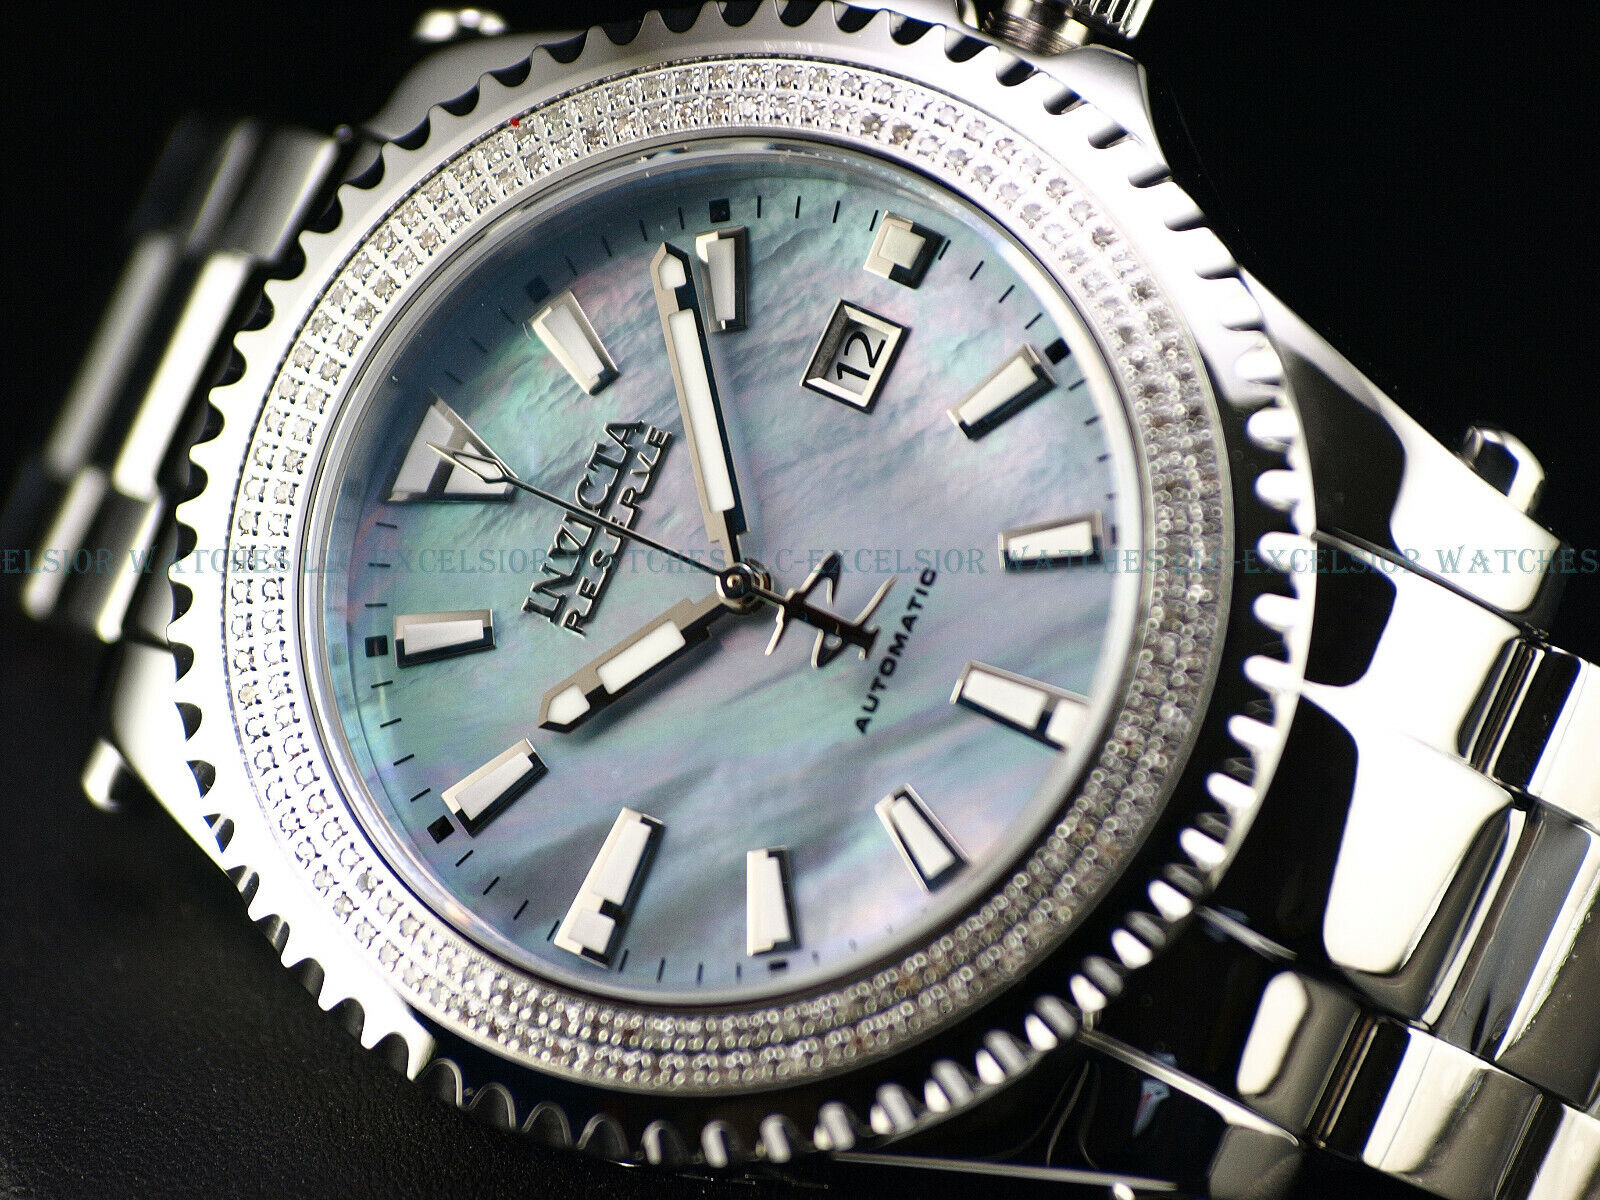 Invicta Reserve Diamond Grand Diver Swiss Automatic Platinum MOP Sapphire Watch